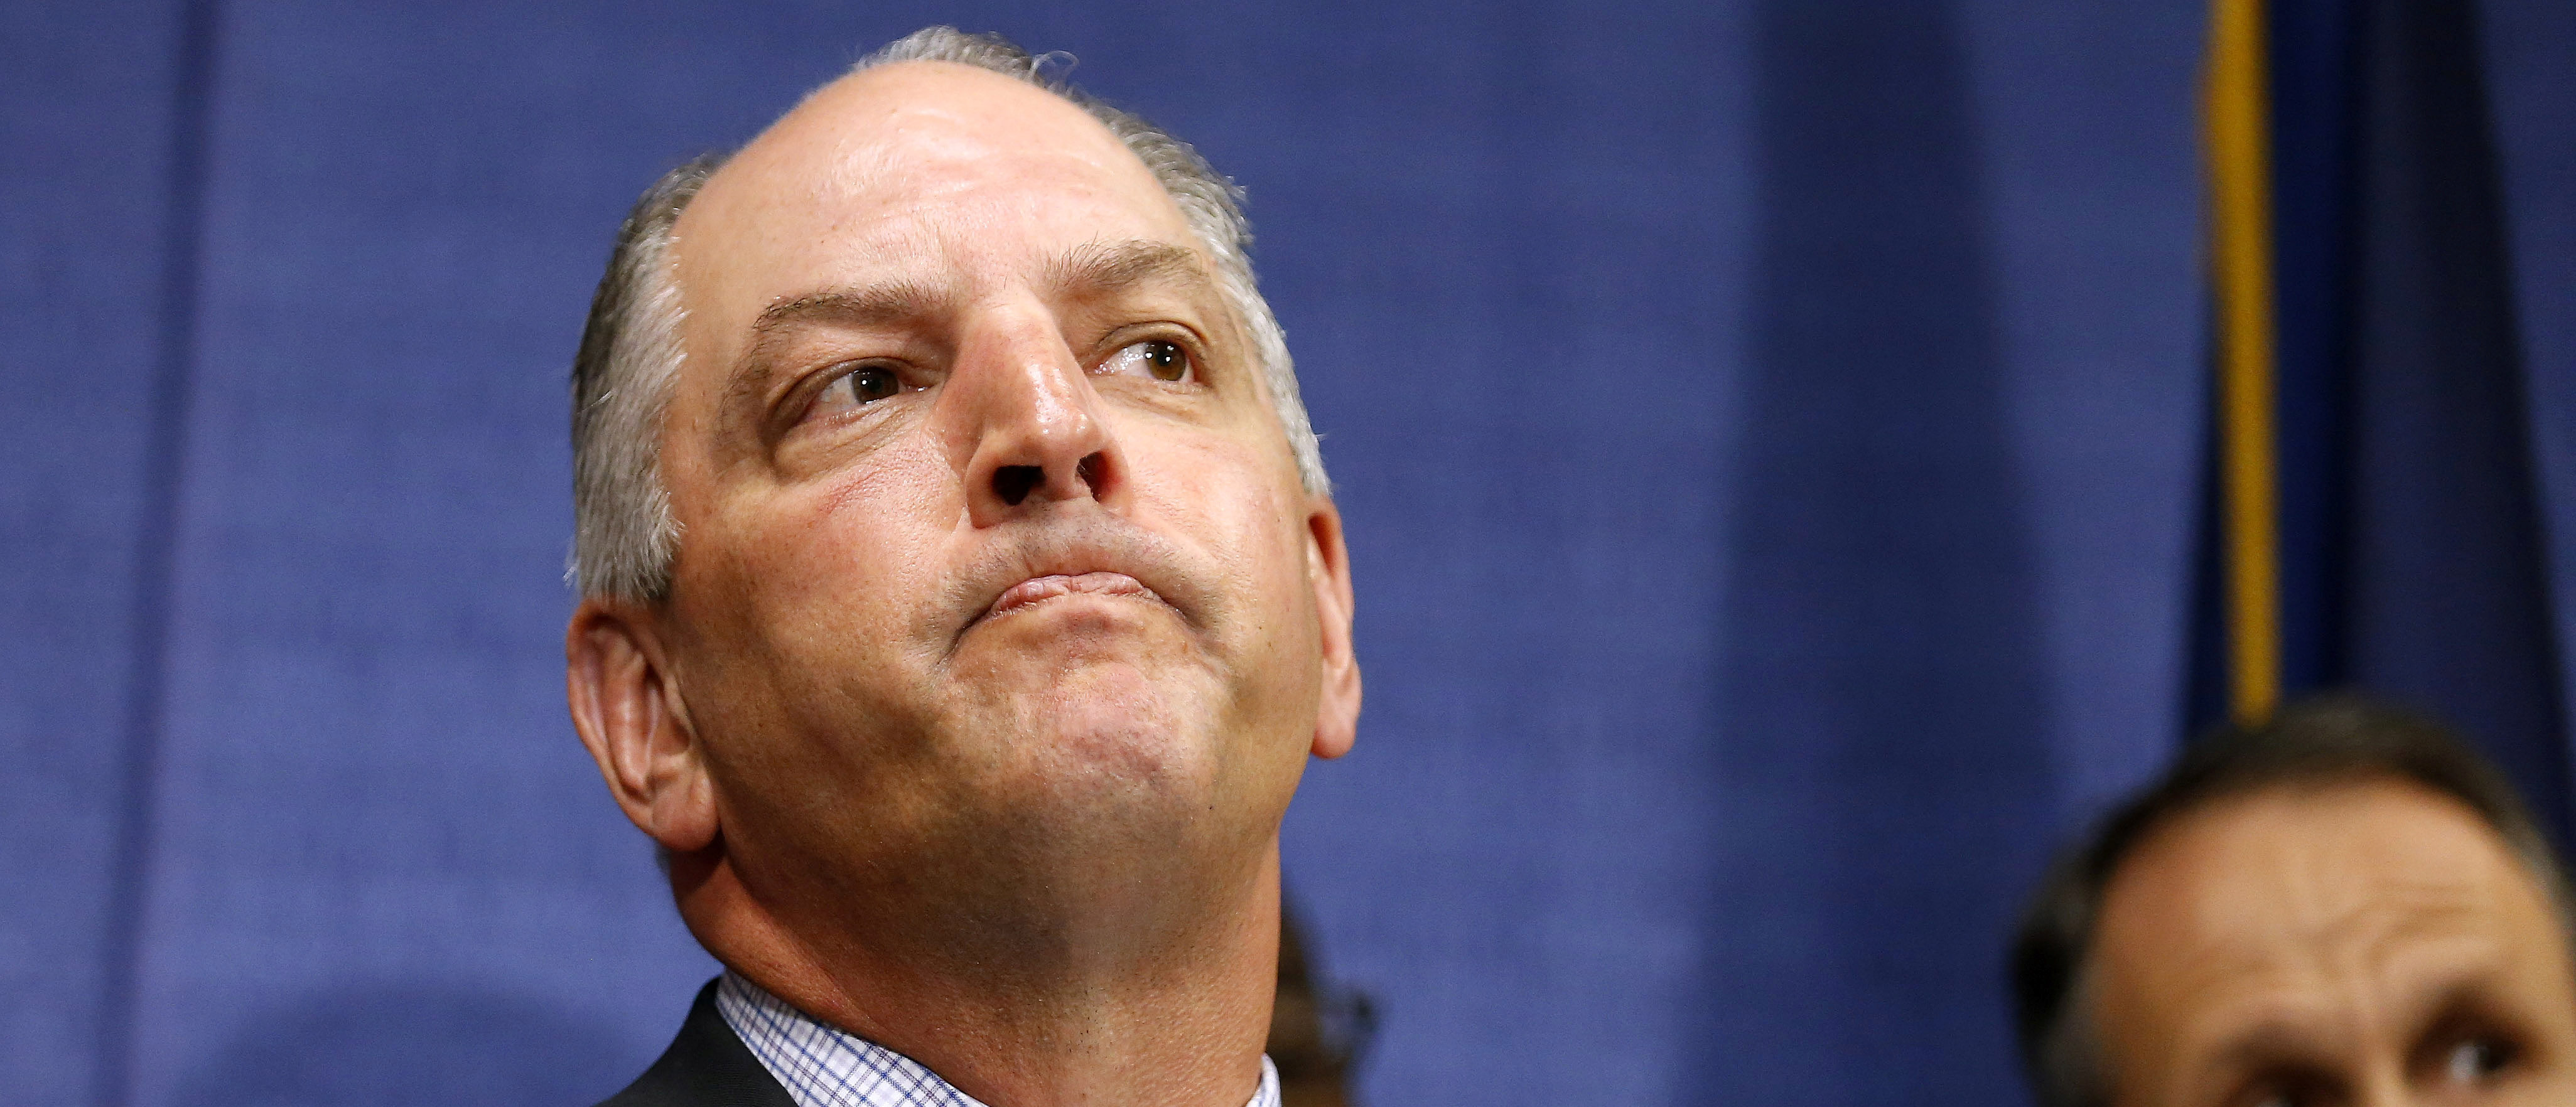 Louisiana Governor John Bel Edwards speaks during a news conference in Baton Rouge, Louisiana, U.S. July 10, 2016. REUTERS/Jonathan Bachman - S1AETOVQOVAA